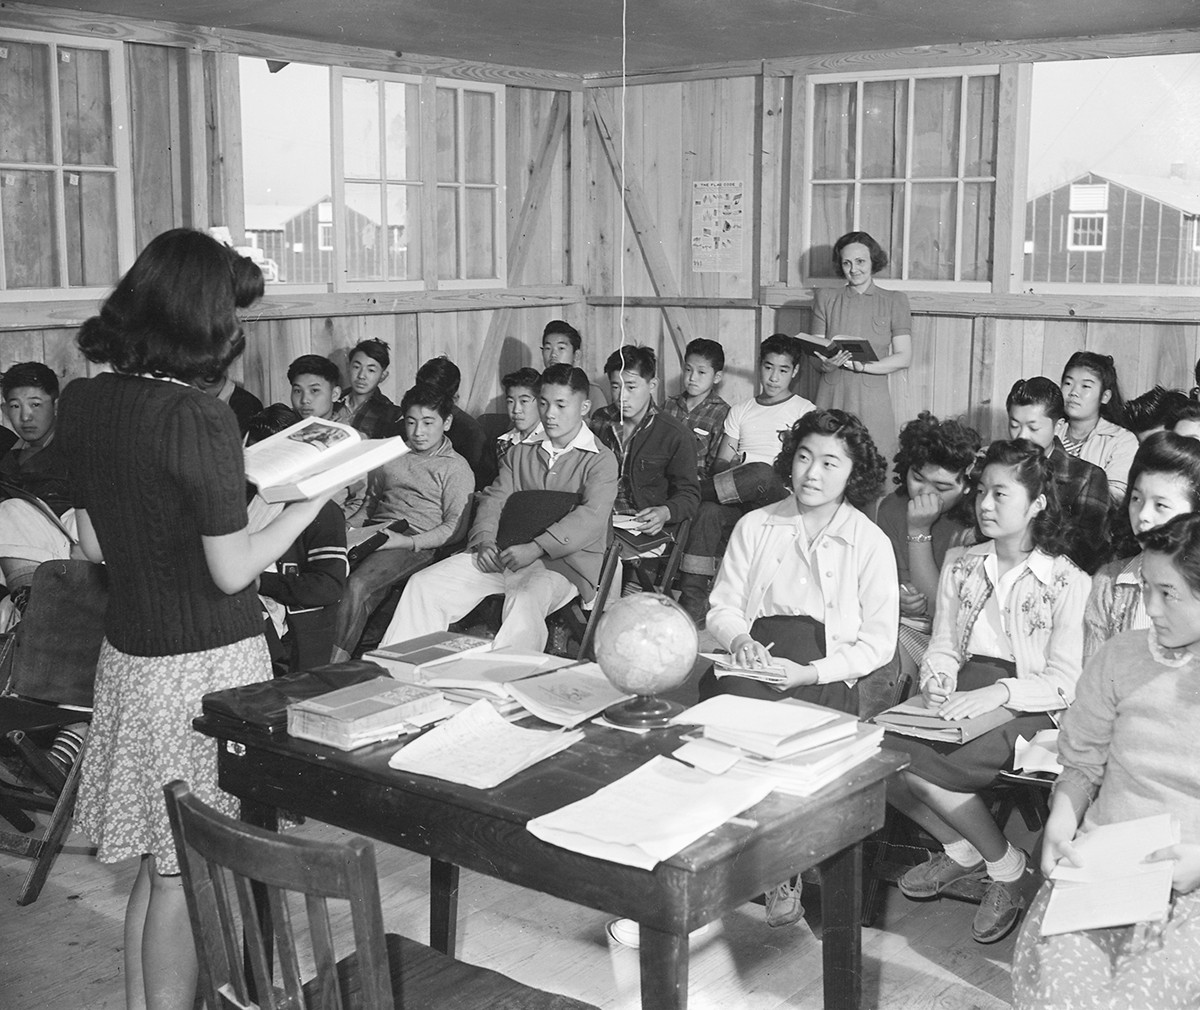 A teacher reads from a book in front of a classroom of children.